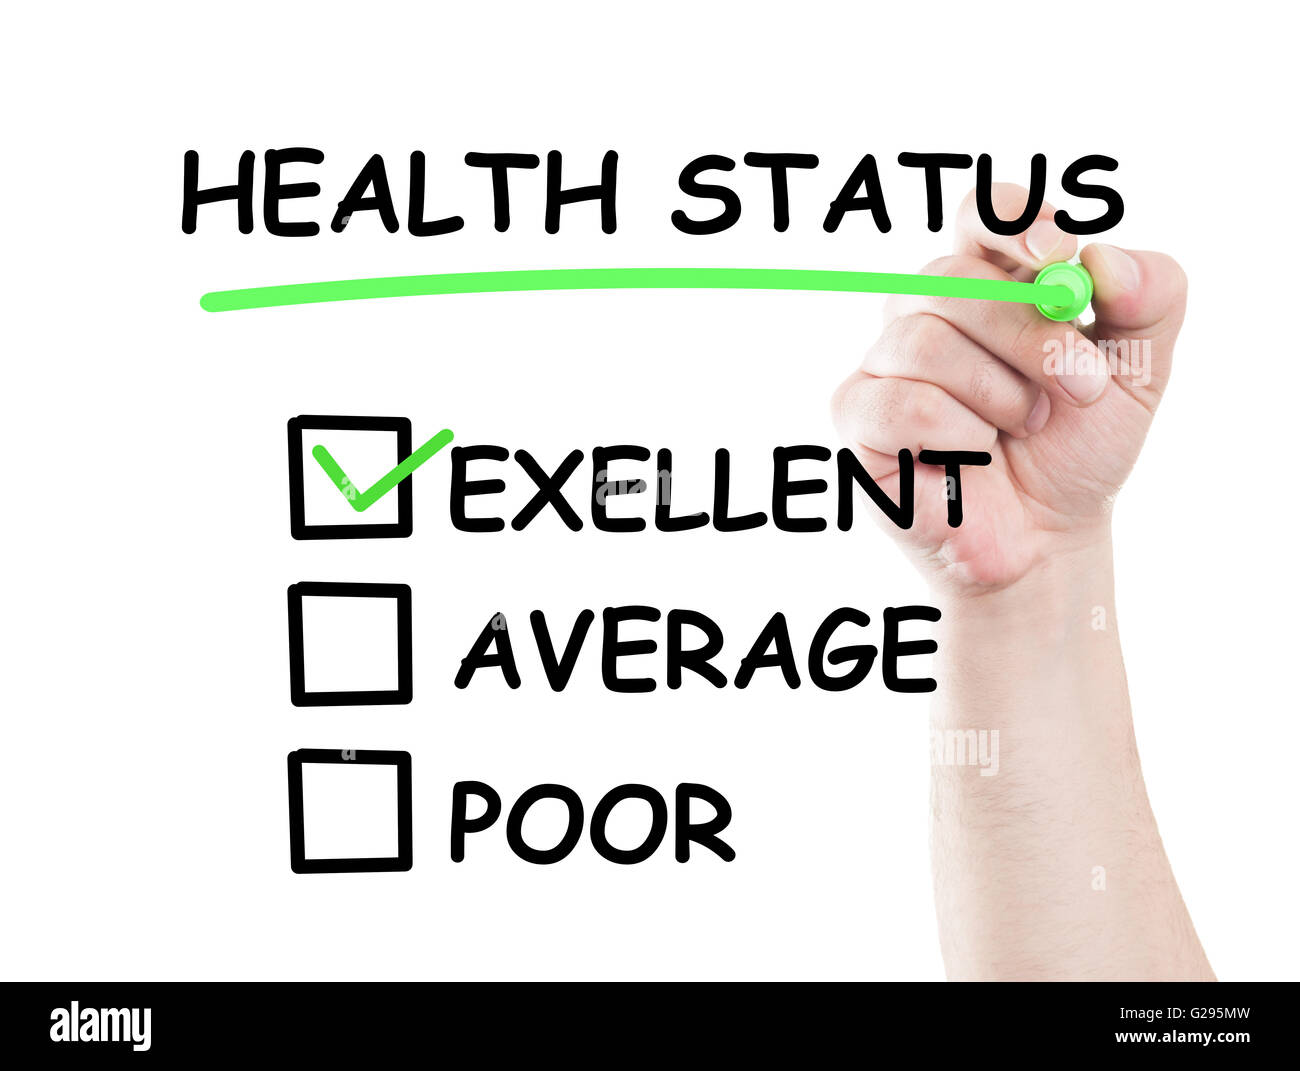 Excellent health status  concept draw on transparent white wipe board with a hand holding a marker - Stock Image